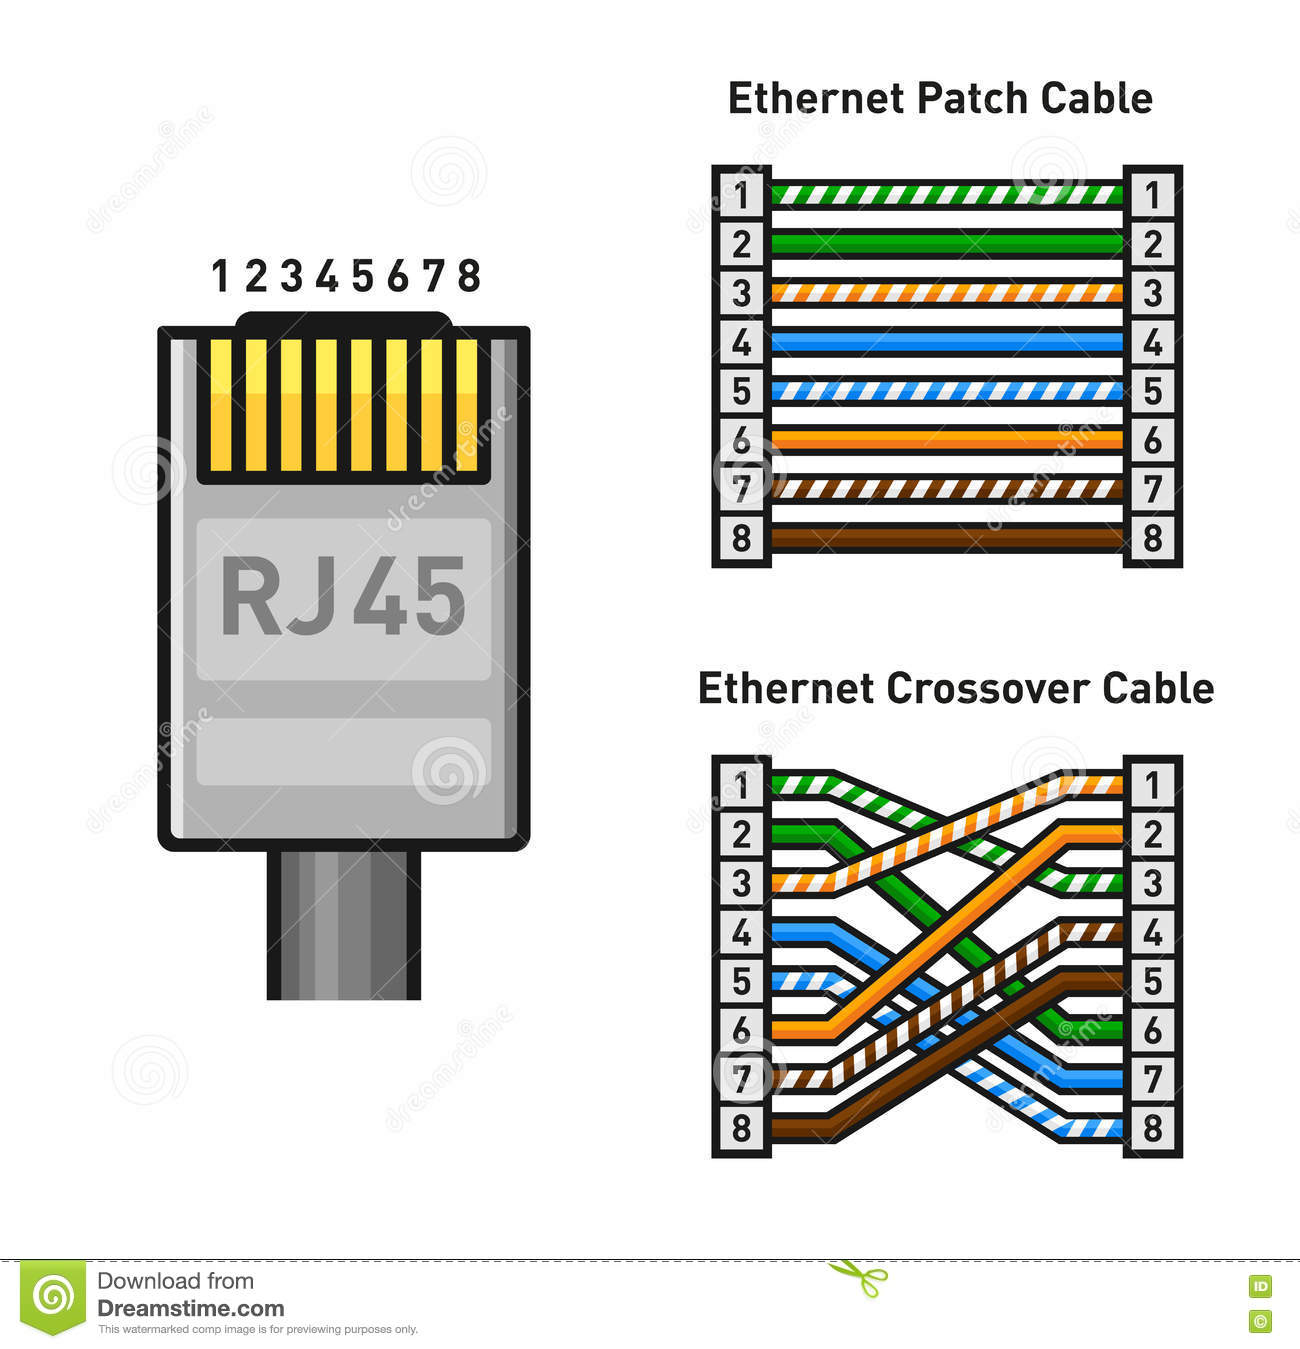 Watch likewise Ez Rj45  work Plugs likewise How To Install An Ether  Jack For A Home  work together with Whats The Difference Between T568a And T568b besides Serial Rj45 Wiring Diagram. on to rj45 connector cat 6 wiring diagram